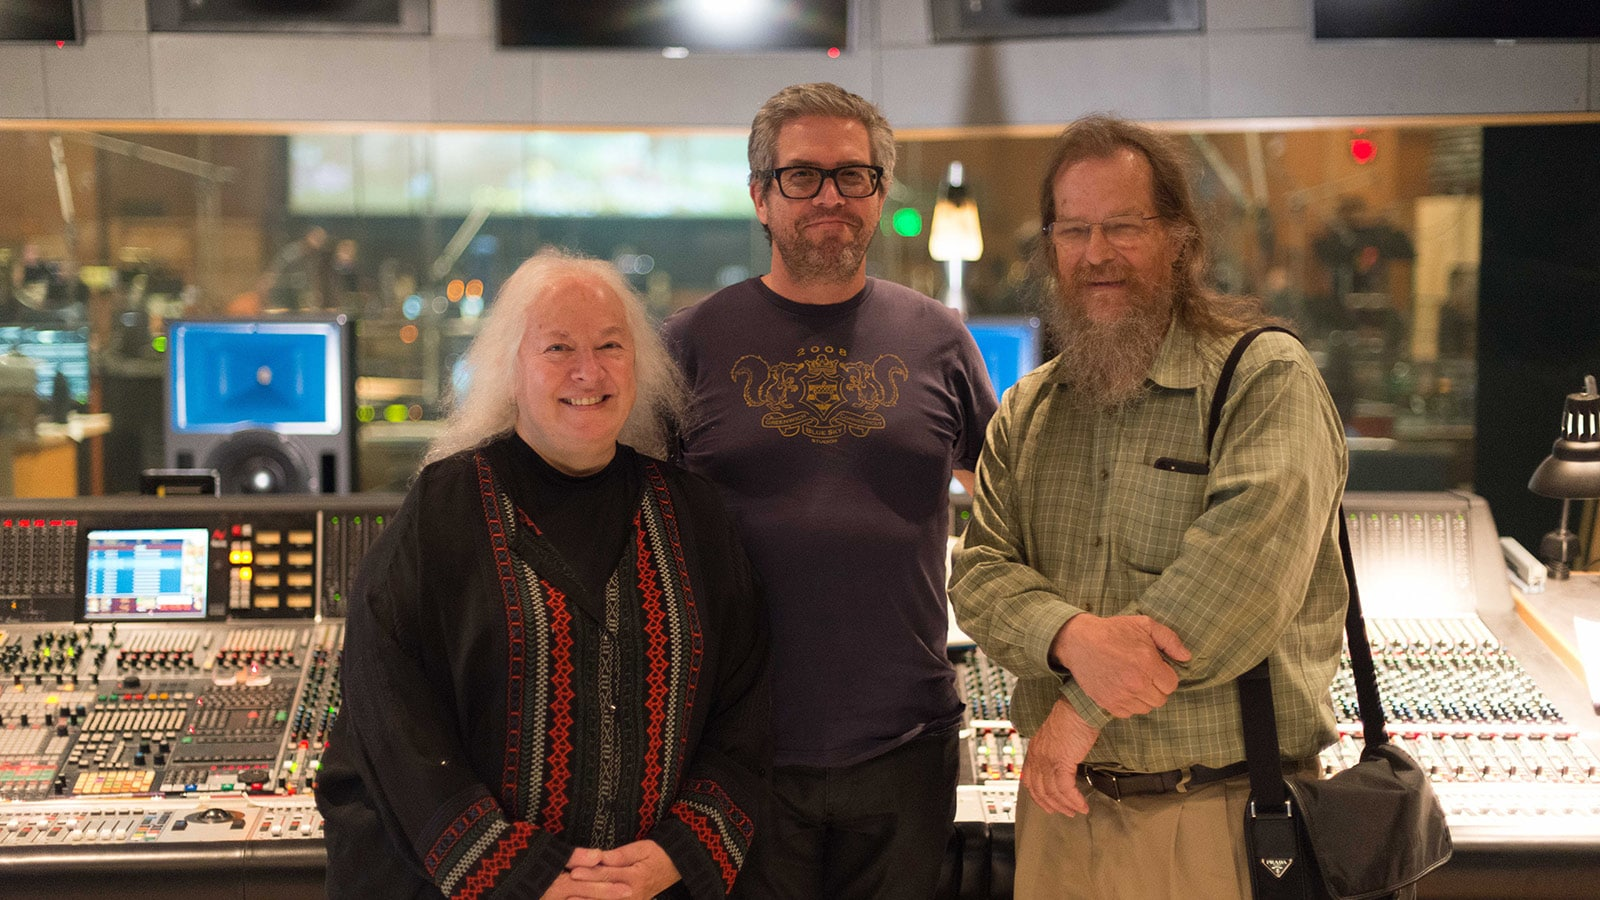 Left to right: Helen Meyer, Executive VP of Meyer Sound; John Powell; John Meyer, CEO of Meyer Sound.